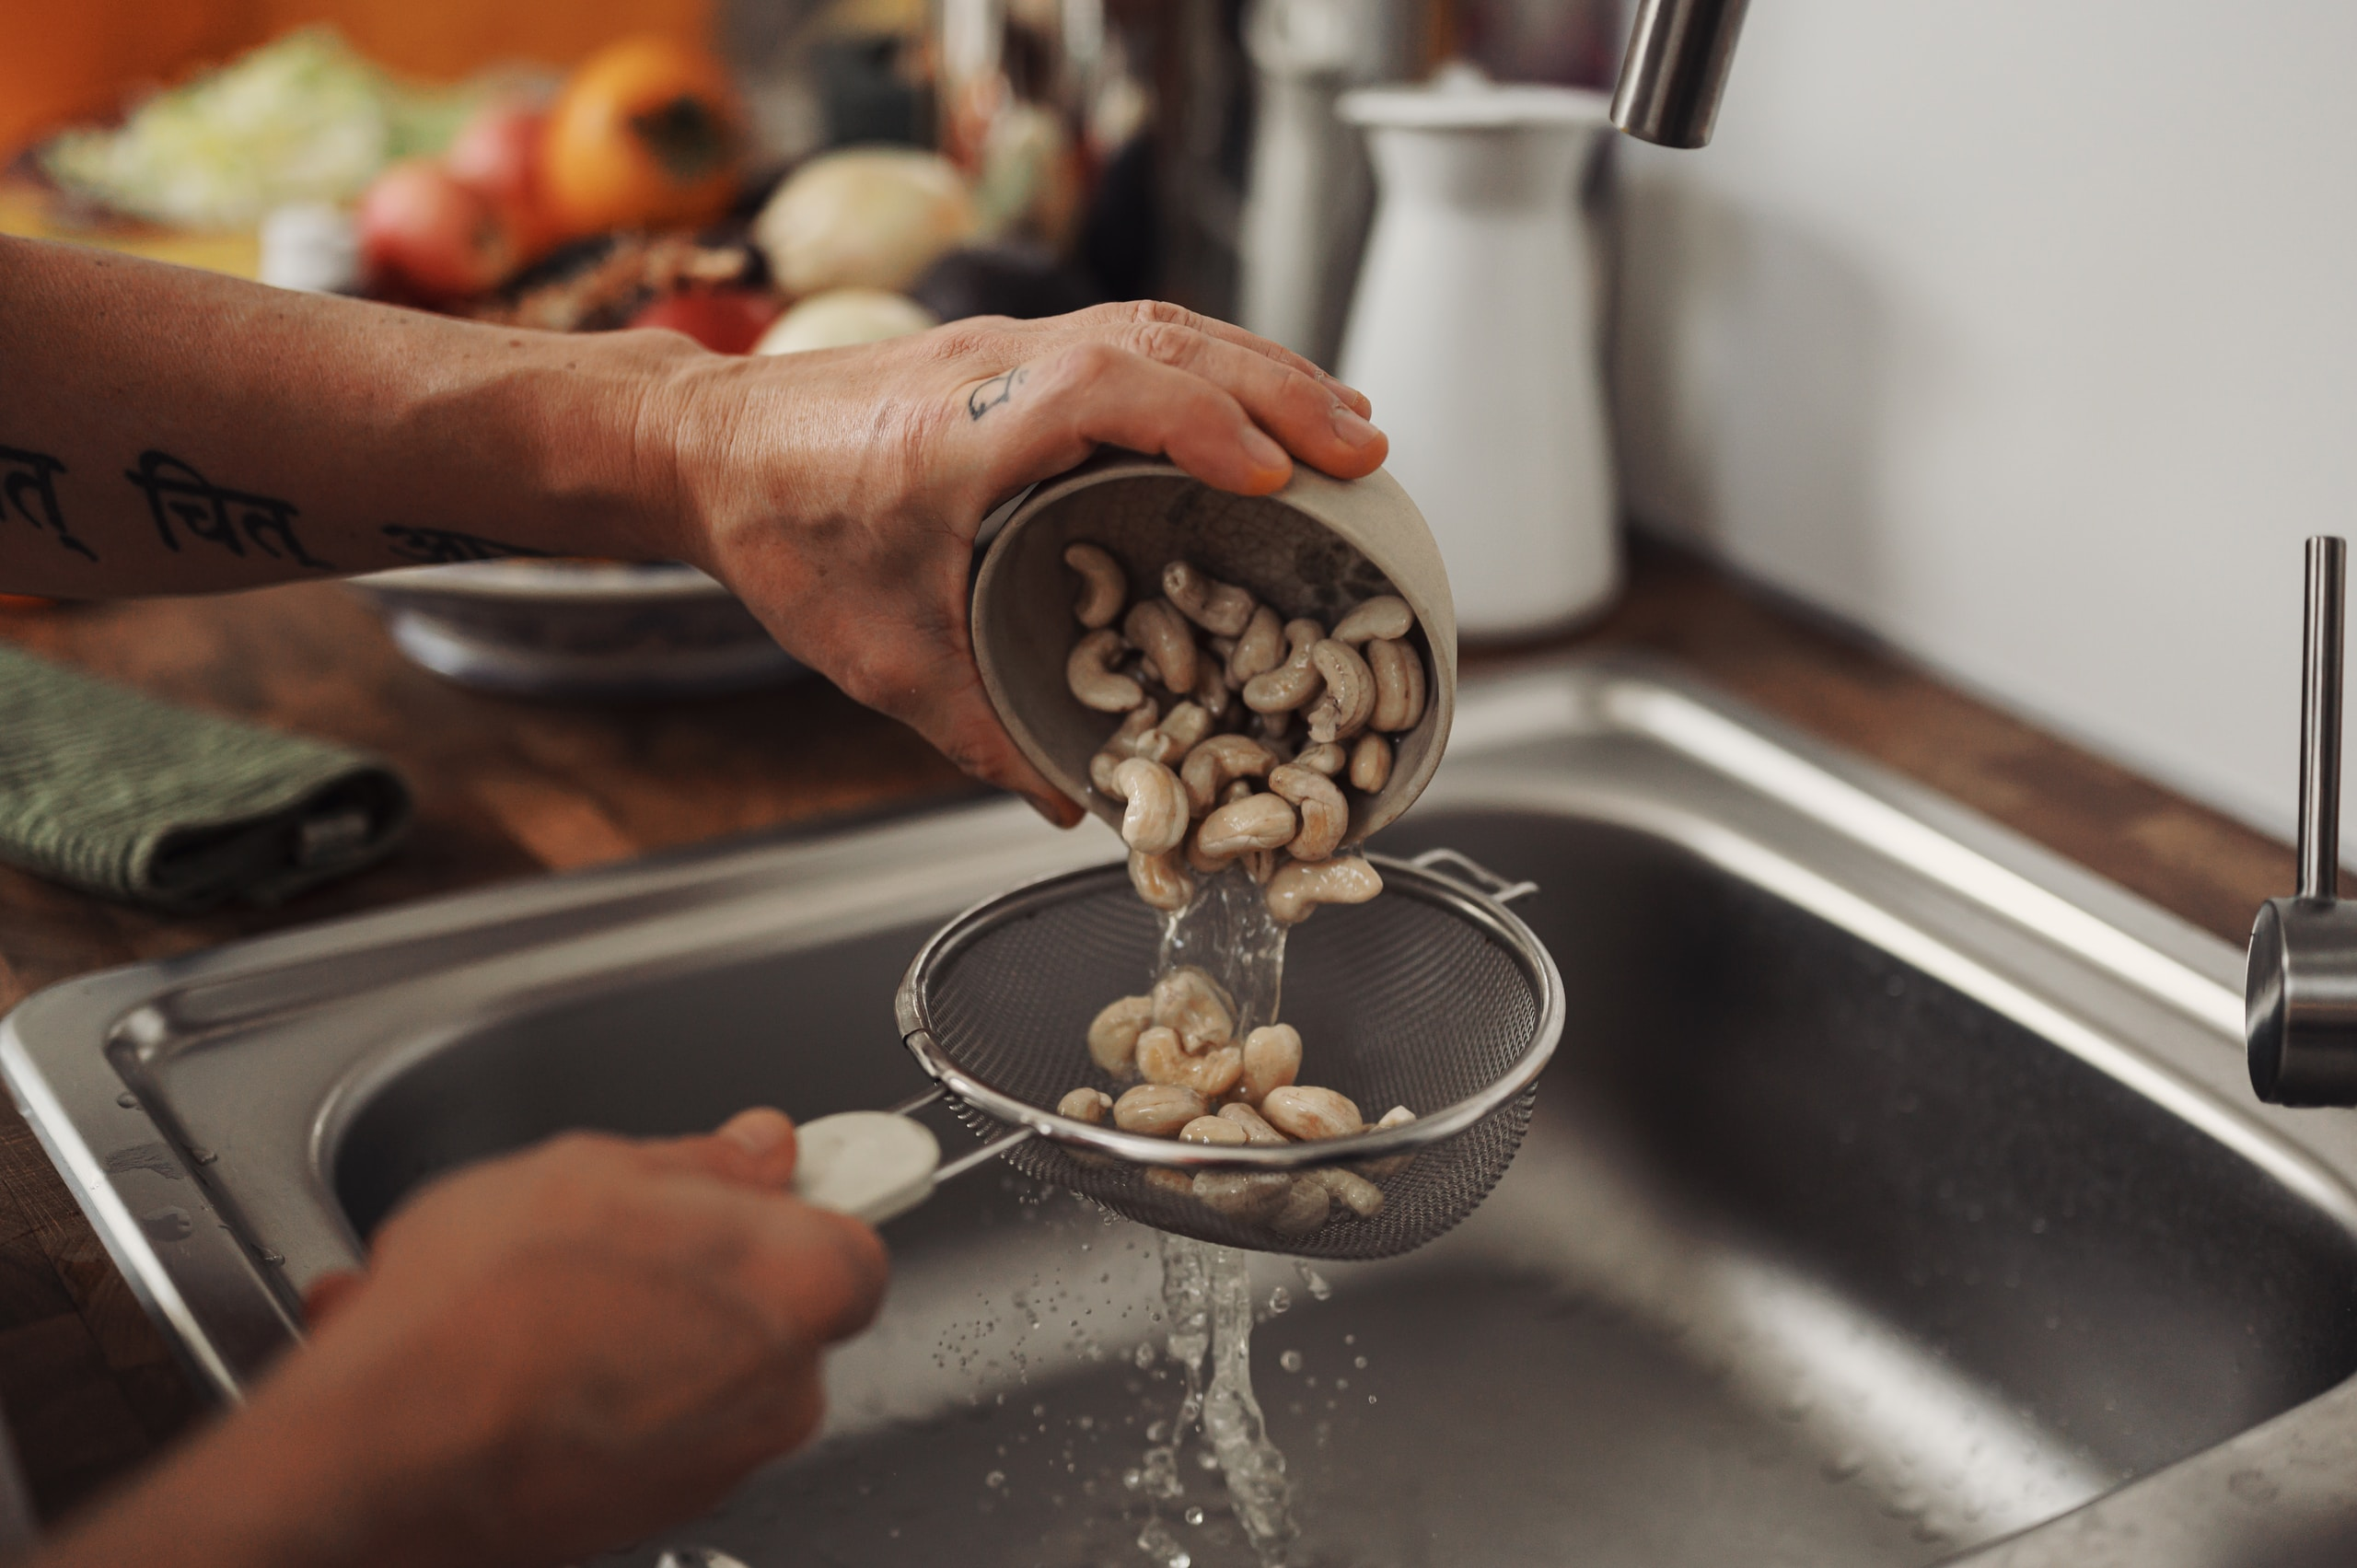 person holding stainless steel spoon with white and black beans